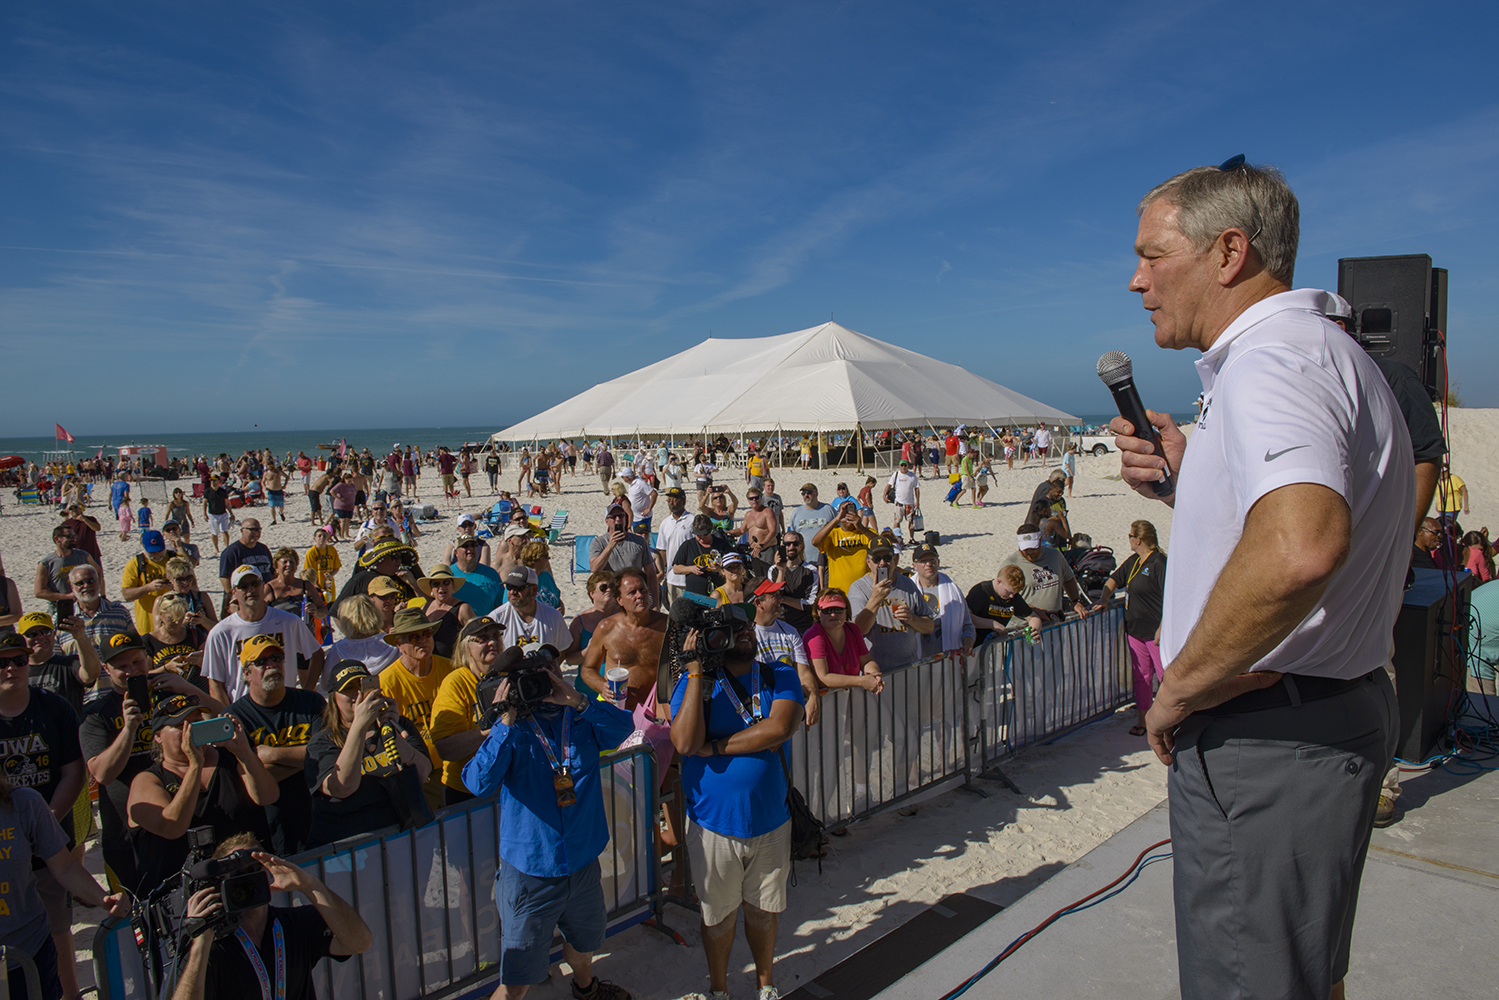 Iowa head coach Kirk Ferentz addresses fans during  Outback Bowl Beach Day at the Hilton Clearwater Beach Resort in Clearwater, Florida on Sunday Dec. 30, 2018. The day's festivities included a variety of events for fans and general merrymaking.